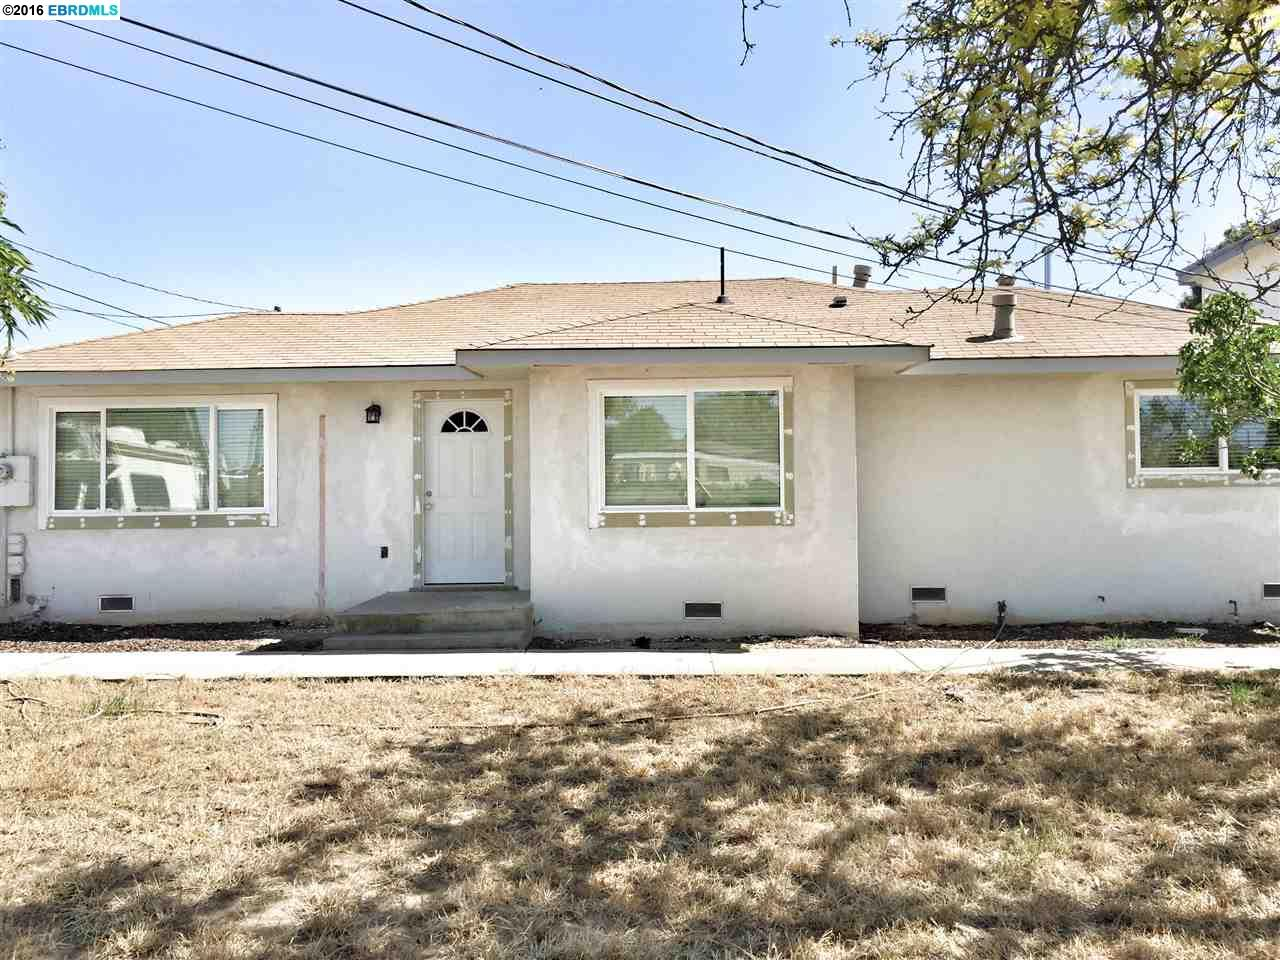 6420 Brentwood Blvd, Brentwood, CA 94513